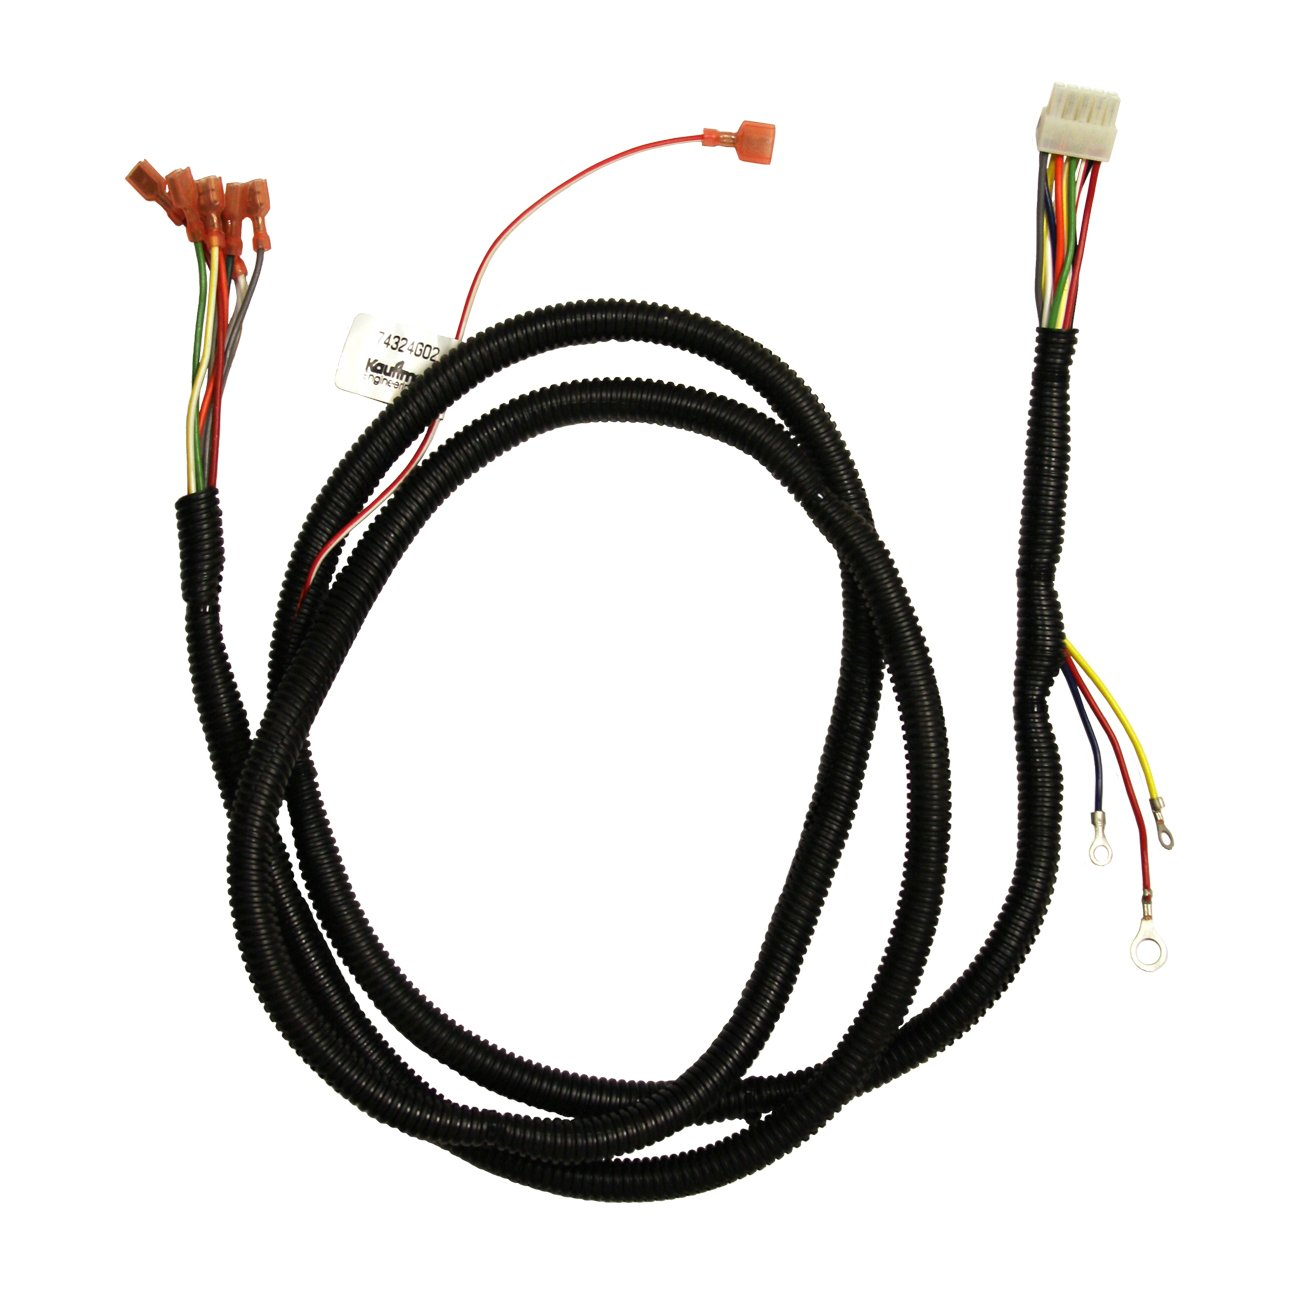 Ezgo Pds Rocker Switch Wiring Diagram 2008 Txt Diagrams 74324g02 Wire Control Harness With For Pdsamazon Com